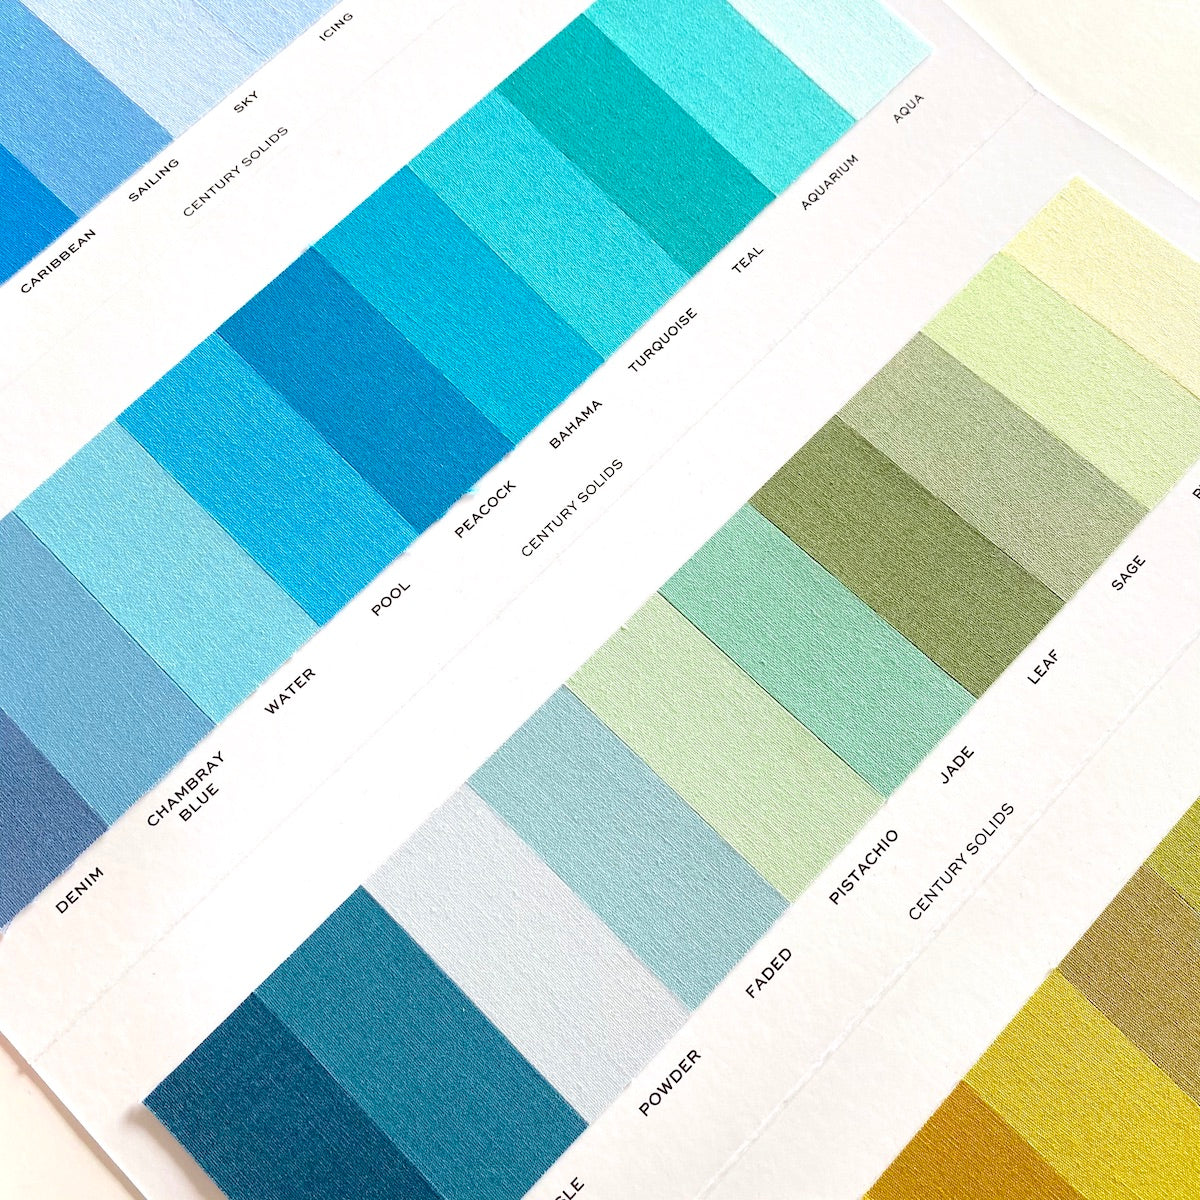 Century Solids Color Card by Andover Fabrics